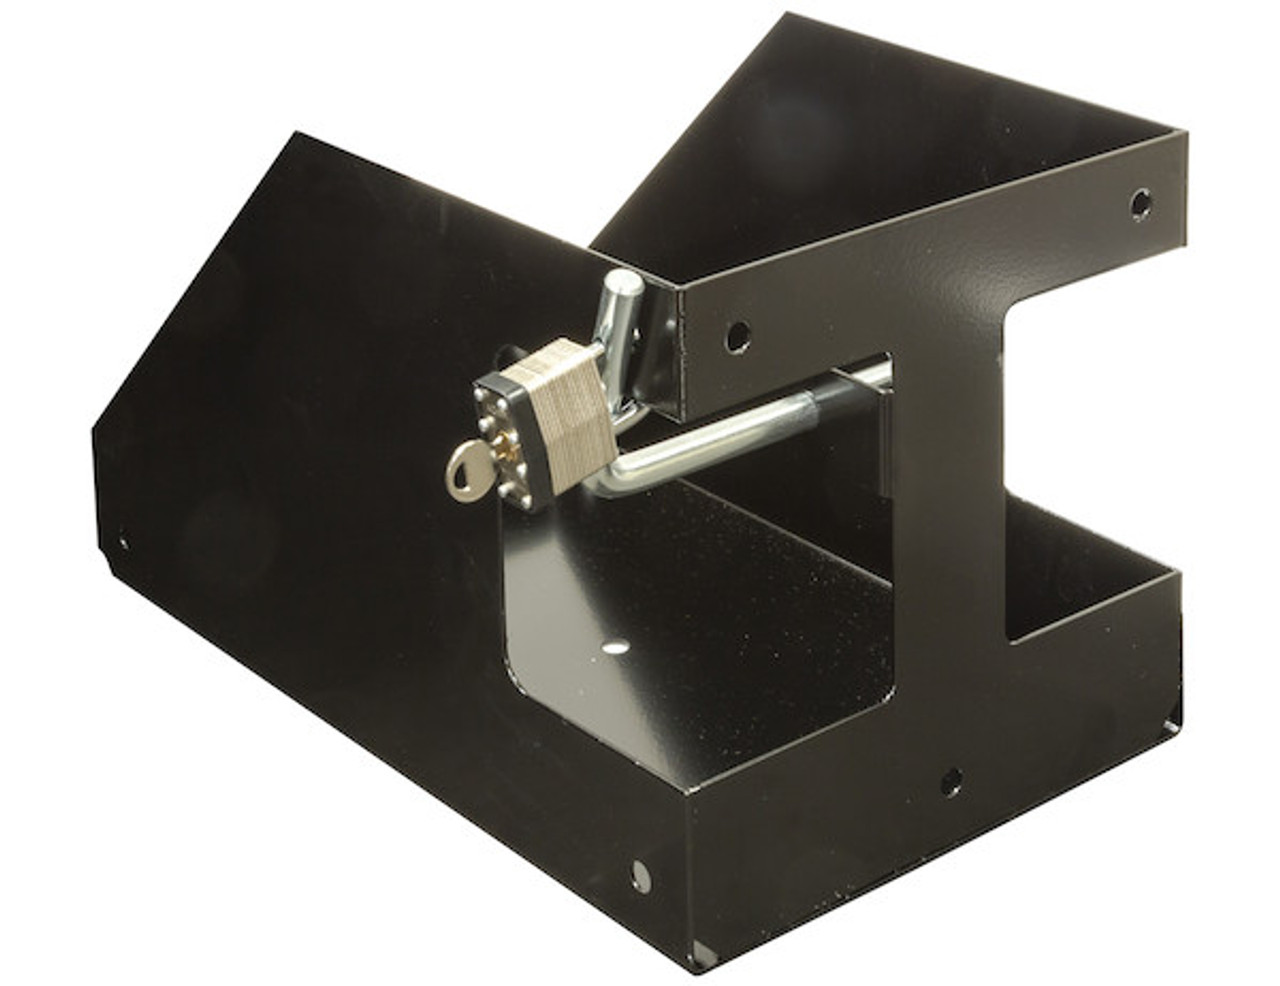 Buyers LT32 Locking Gas Container Rack For Landscaping Trailers, Garages, Sheds, Construction Vehicles Picture # 1